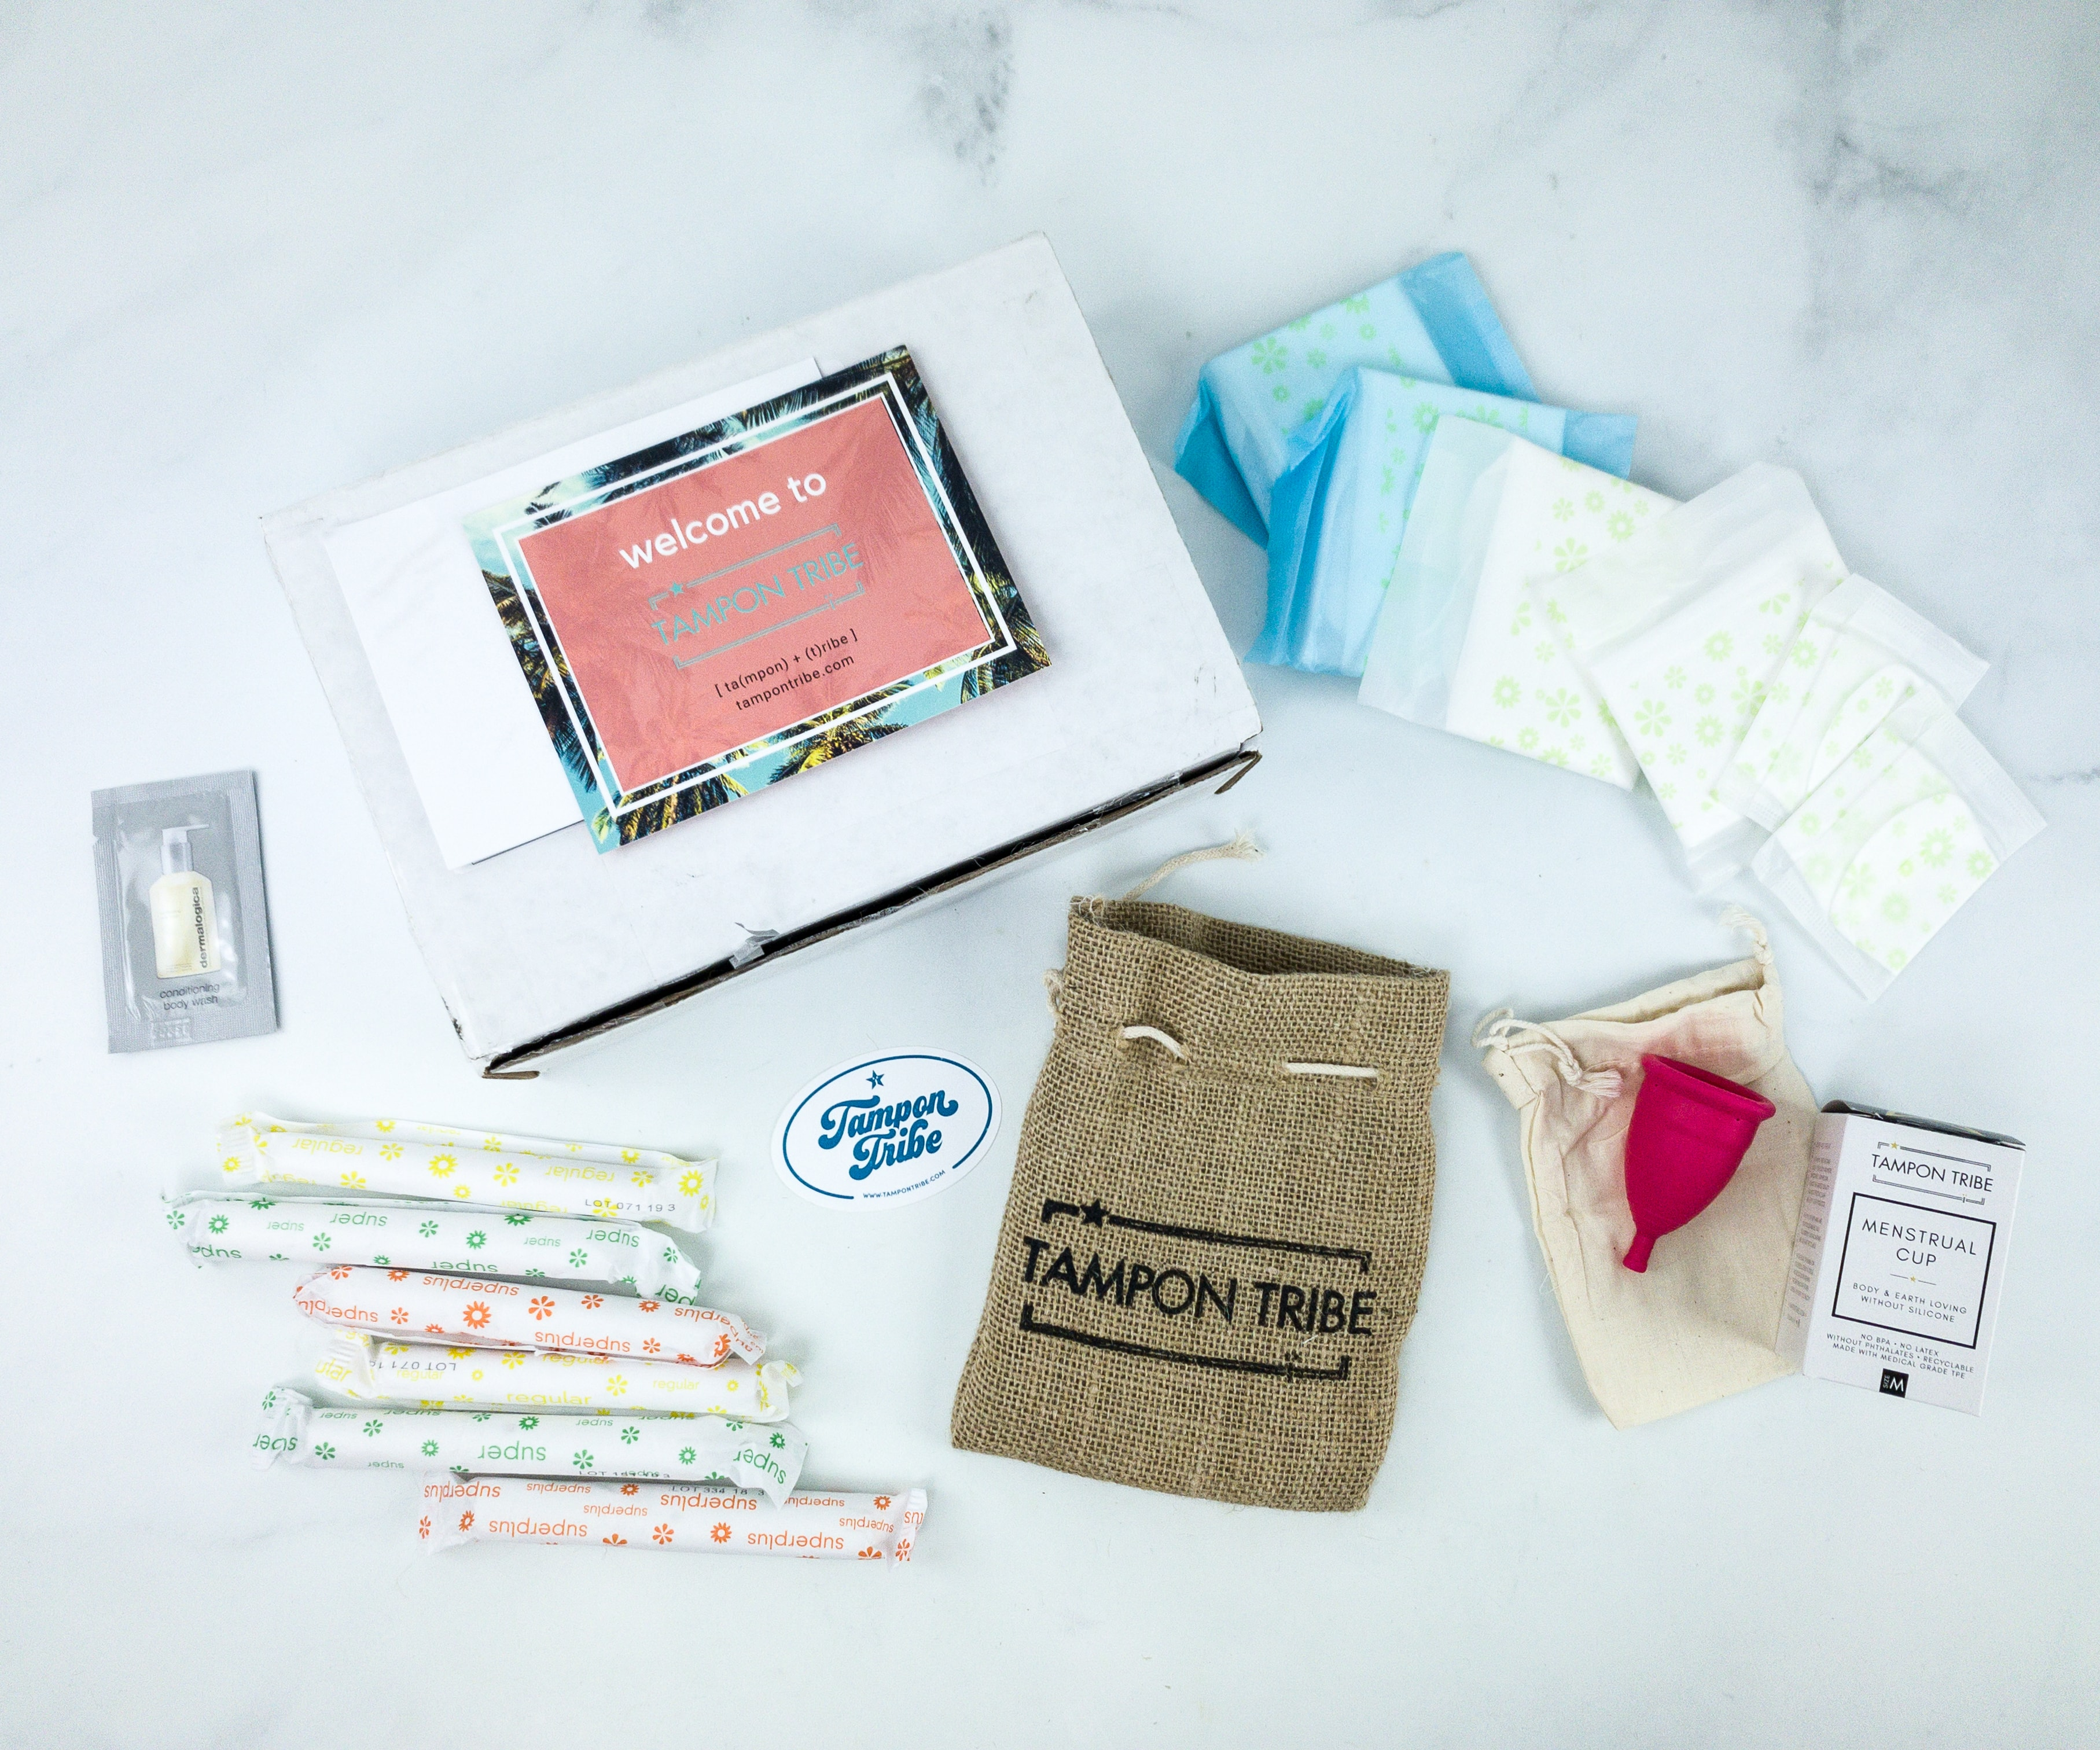 Tampon Tribe Review + Coupon